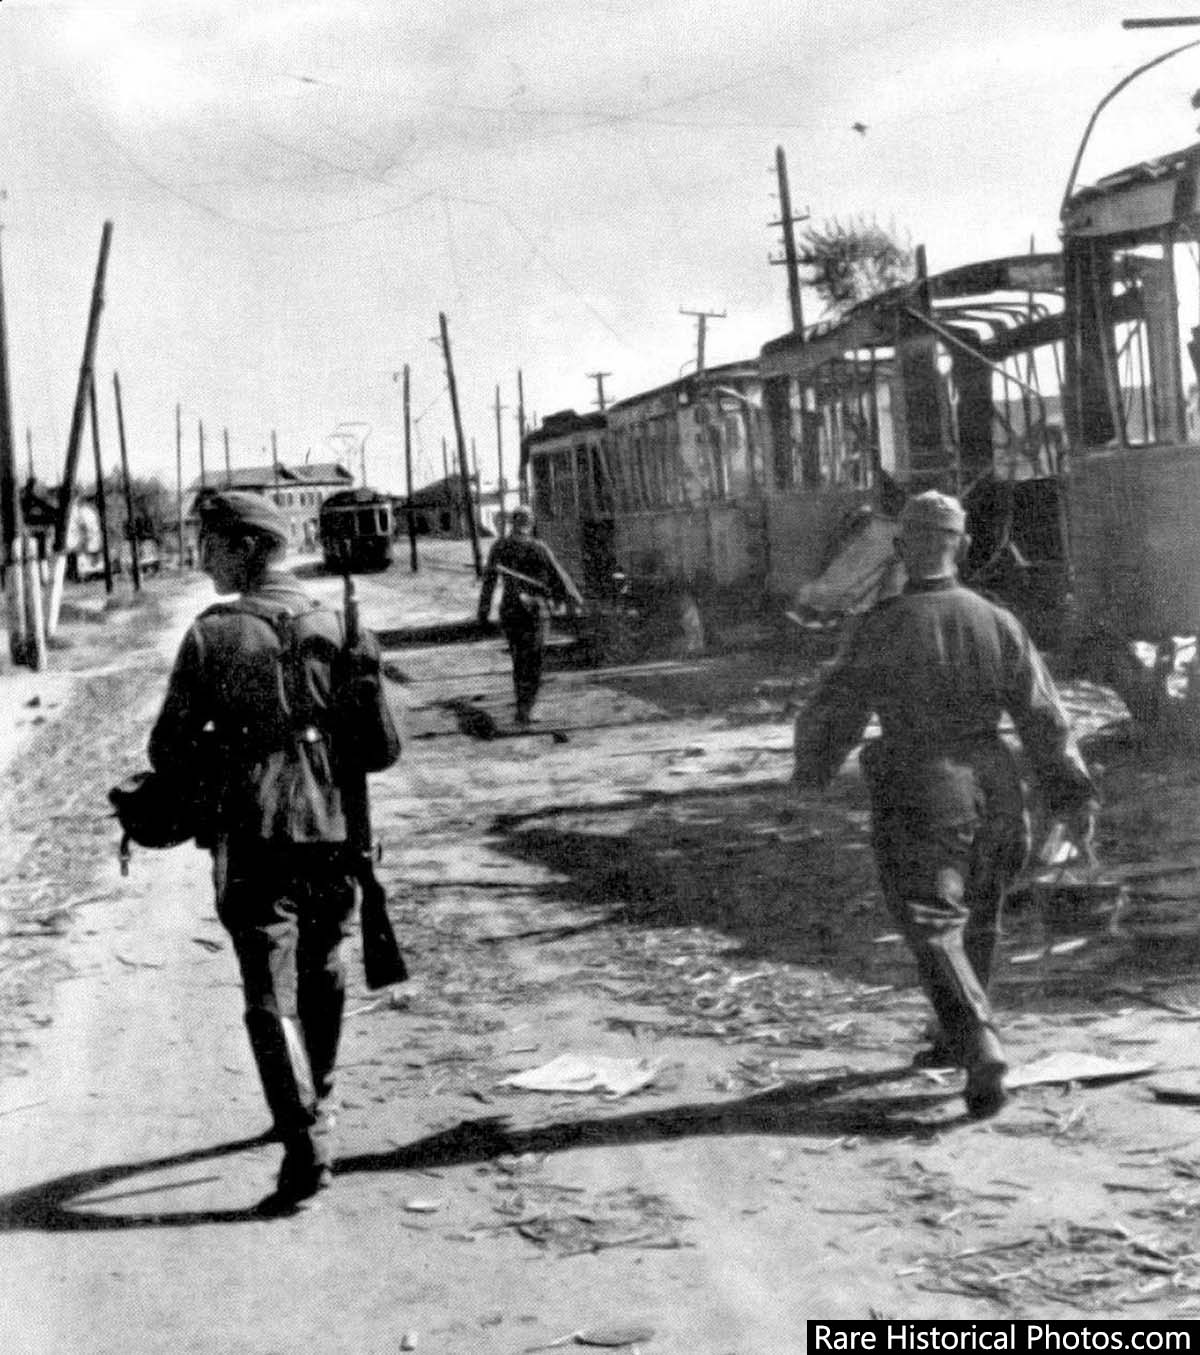 Germans walk past burnt tram cars on the streets of Stalingrad.